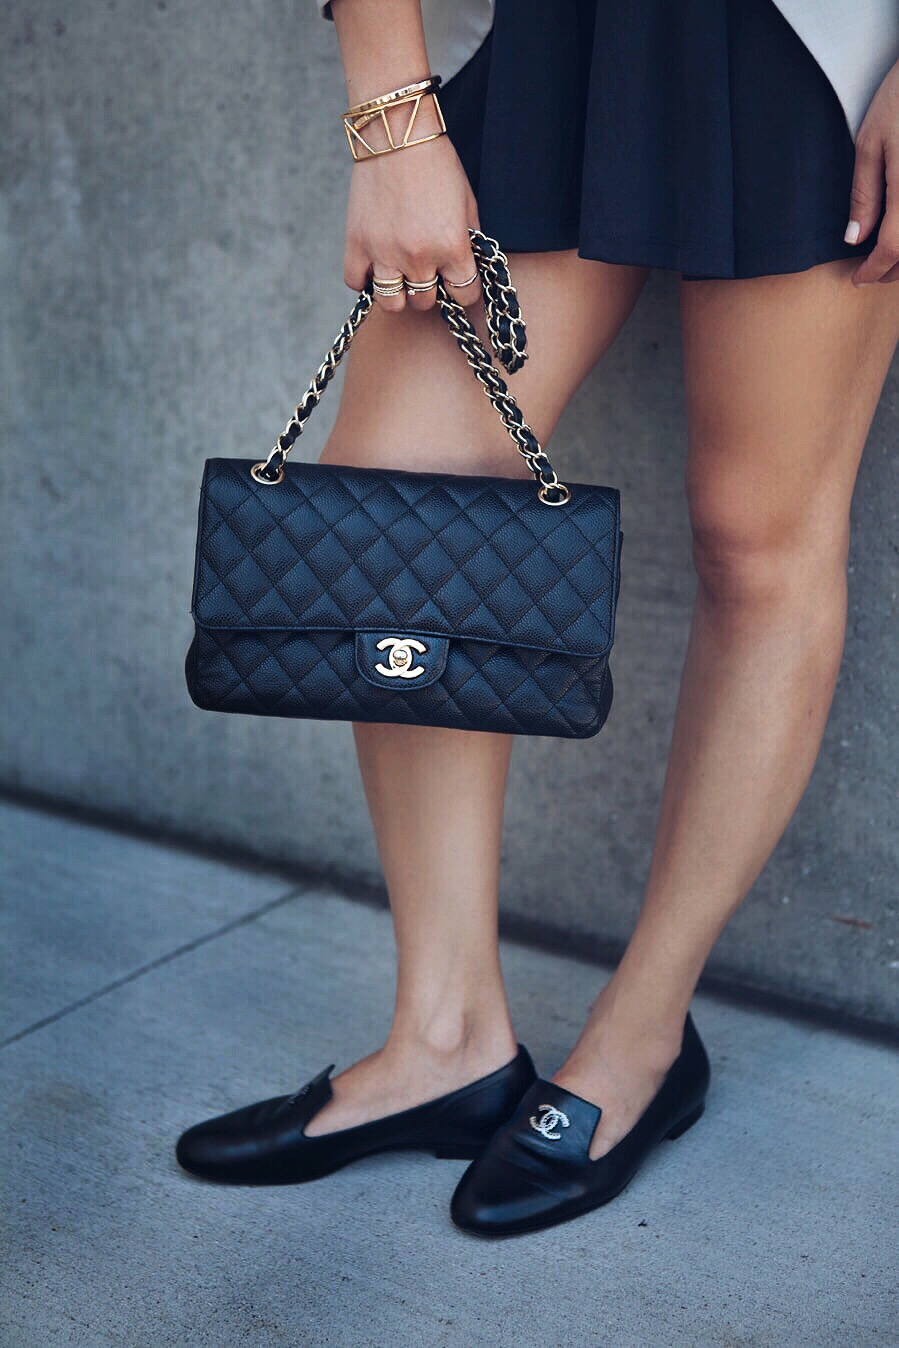 Sona Gasparian accessories her casual style with loafers and a chanel bag.